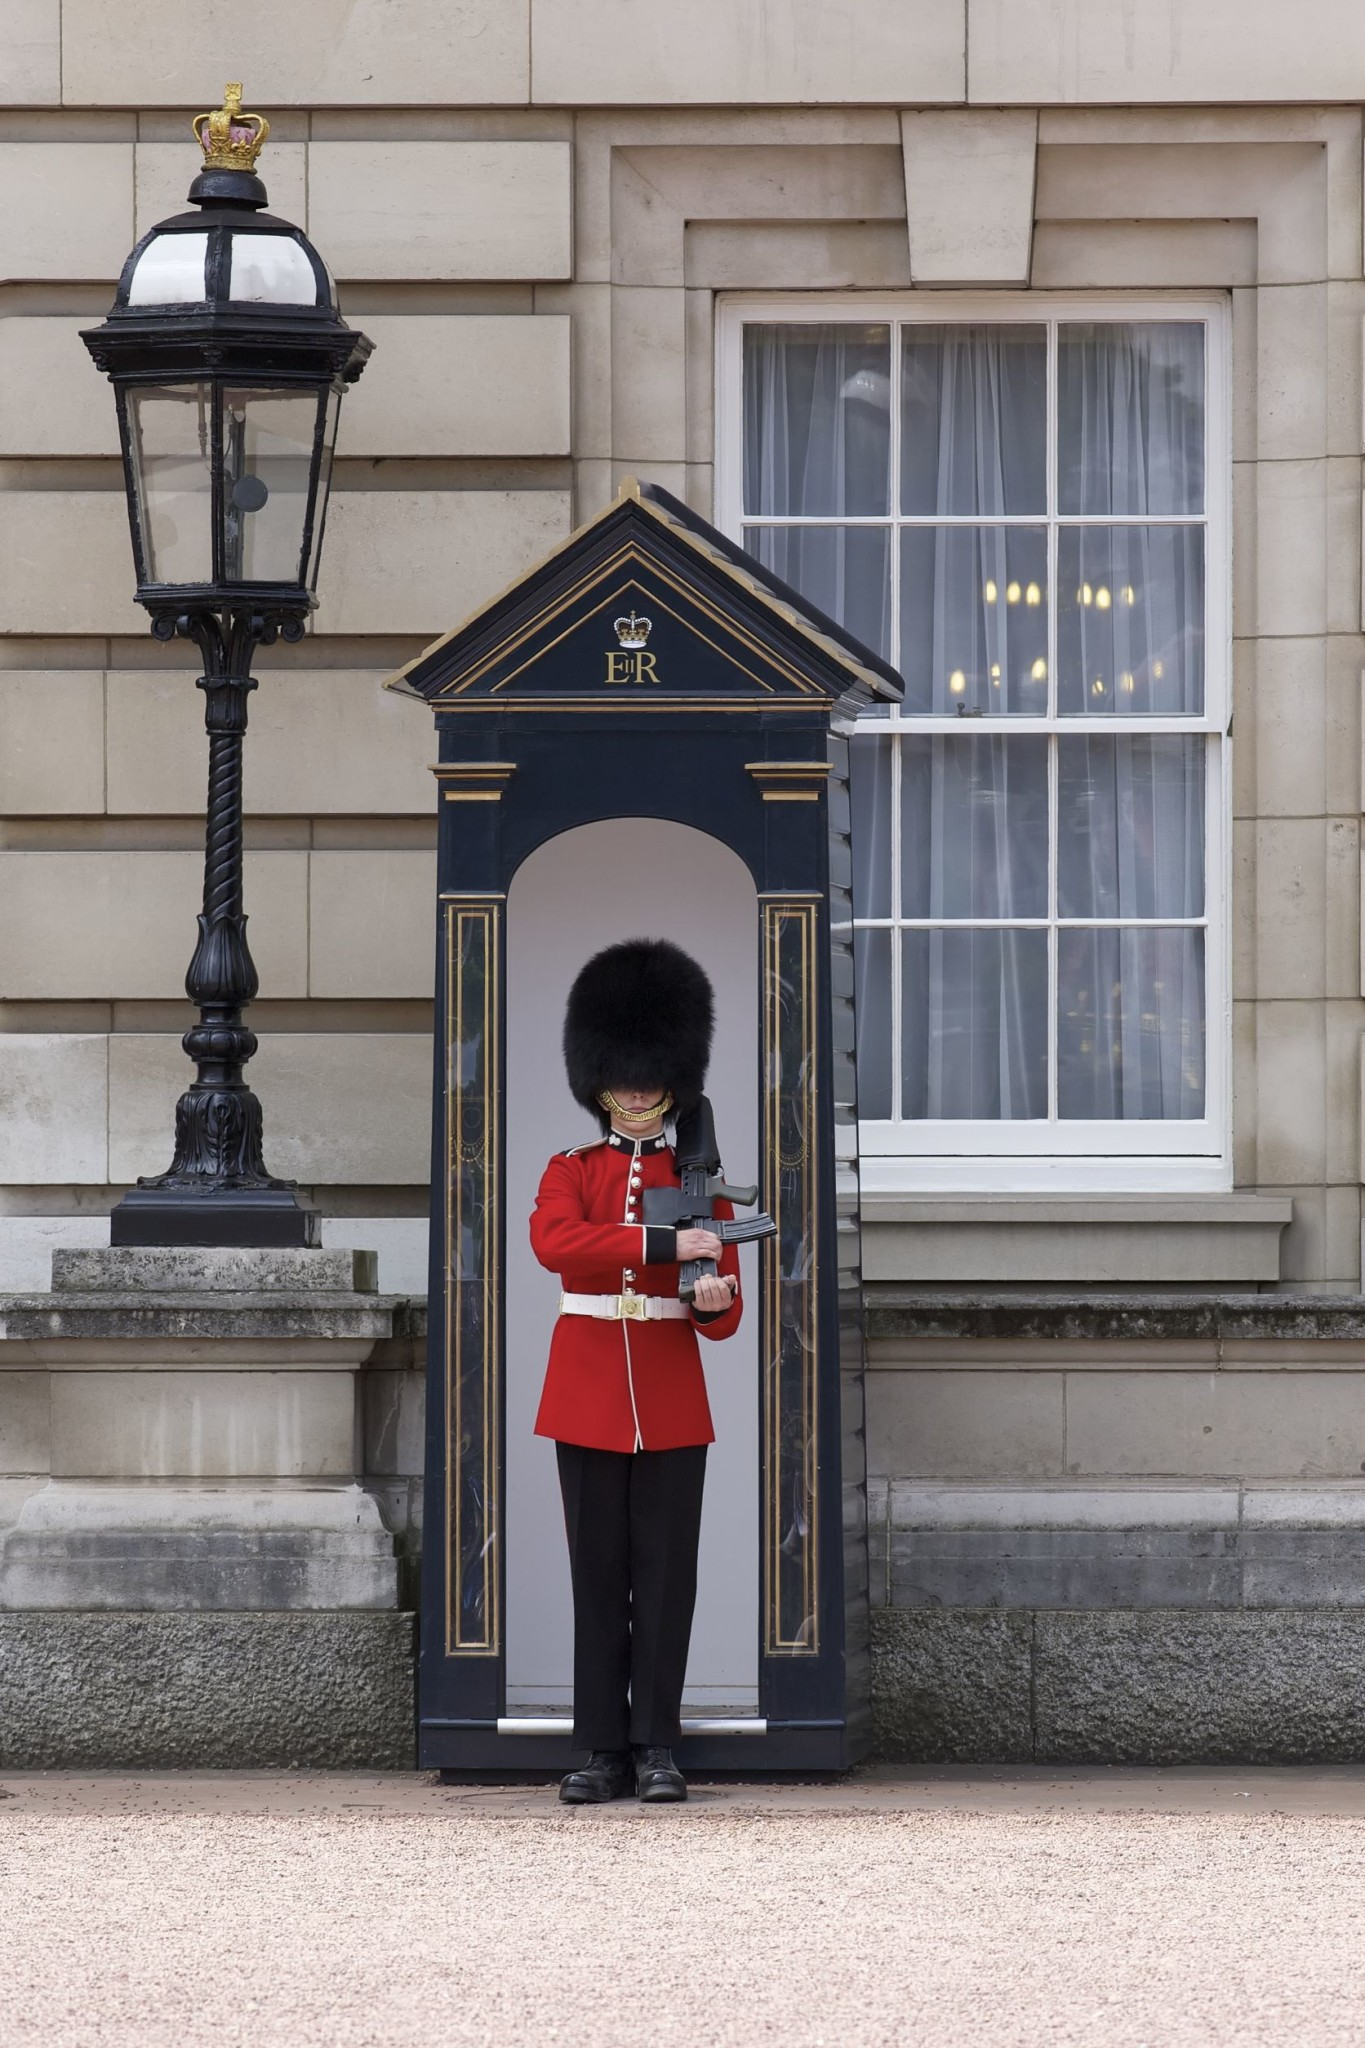 Sentry of the Grenadier Guards outside Buckingham Palace in London